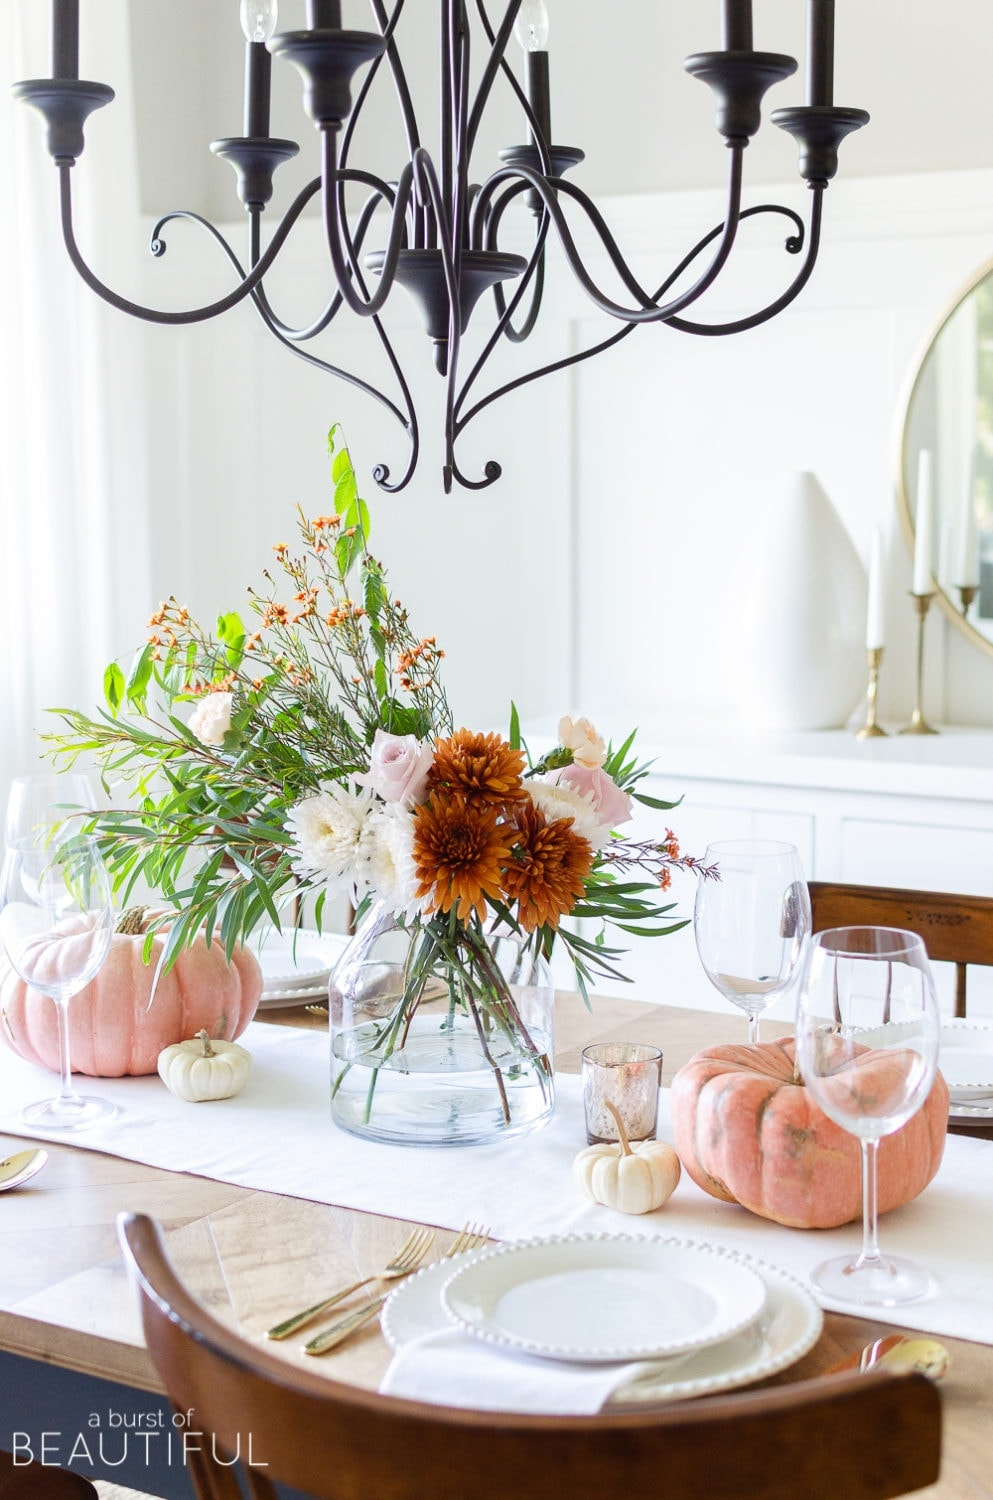 Thanksgiving table centerpieces with a fall floral arrangement and orange pumpkins